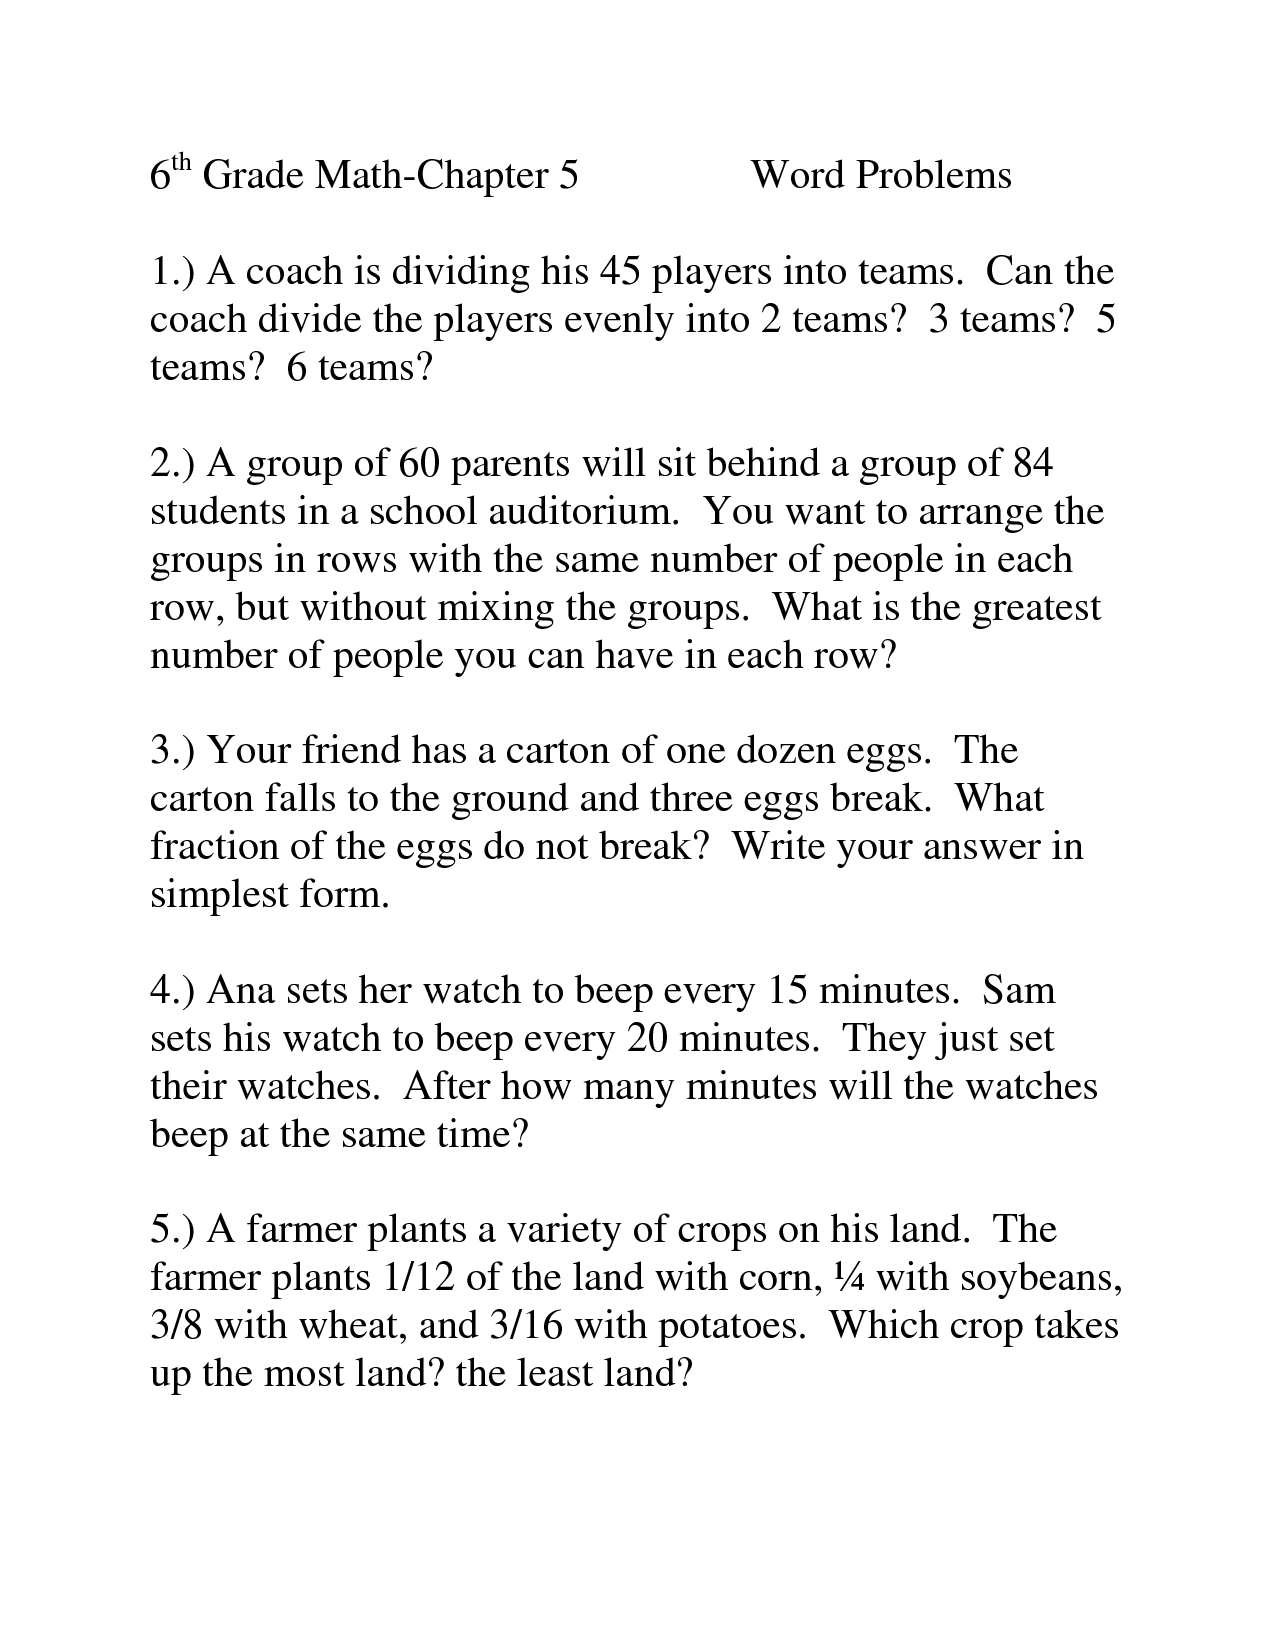 K5 Learning Grade 5 Math Word Problems Worksheet Answers Addition Word Problems Worksheets